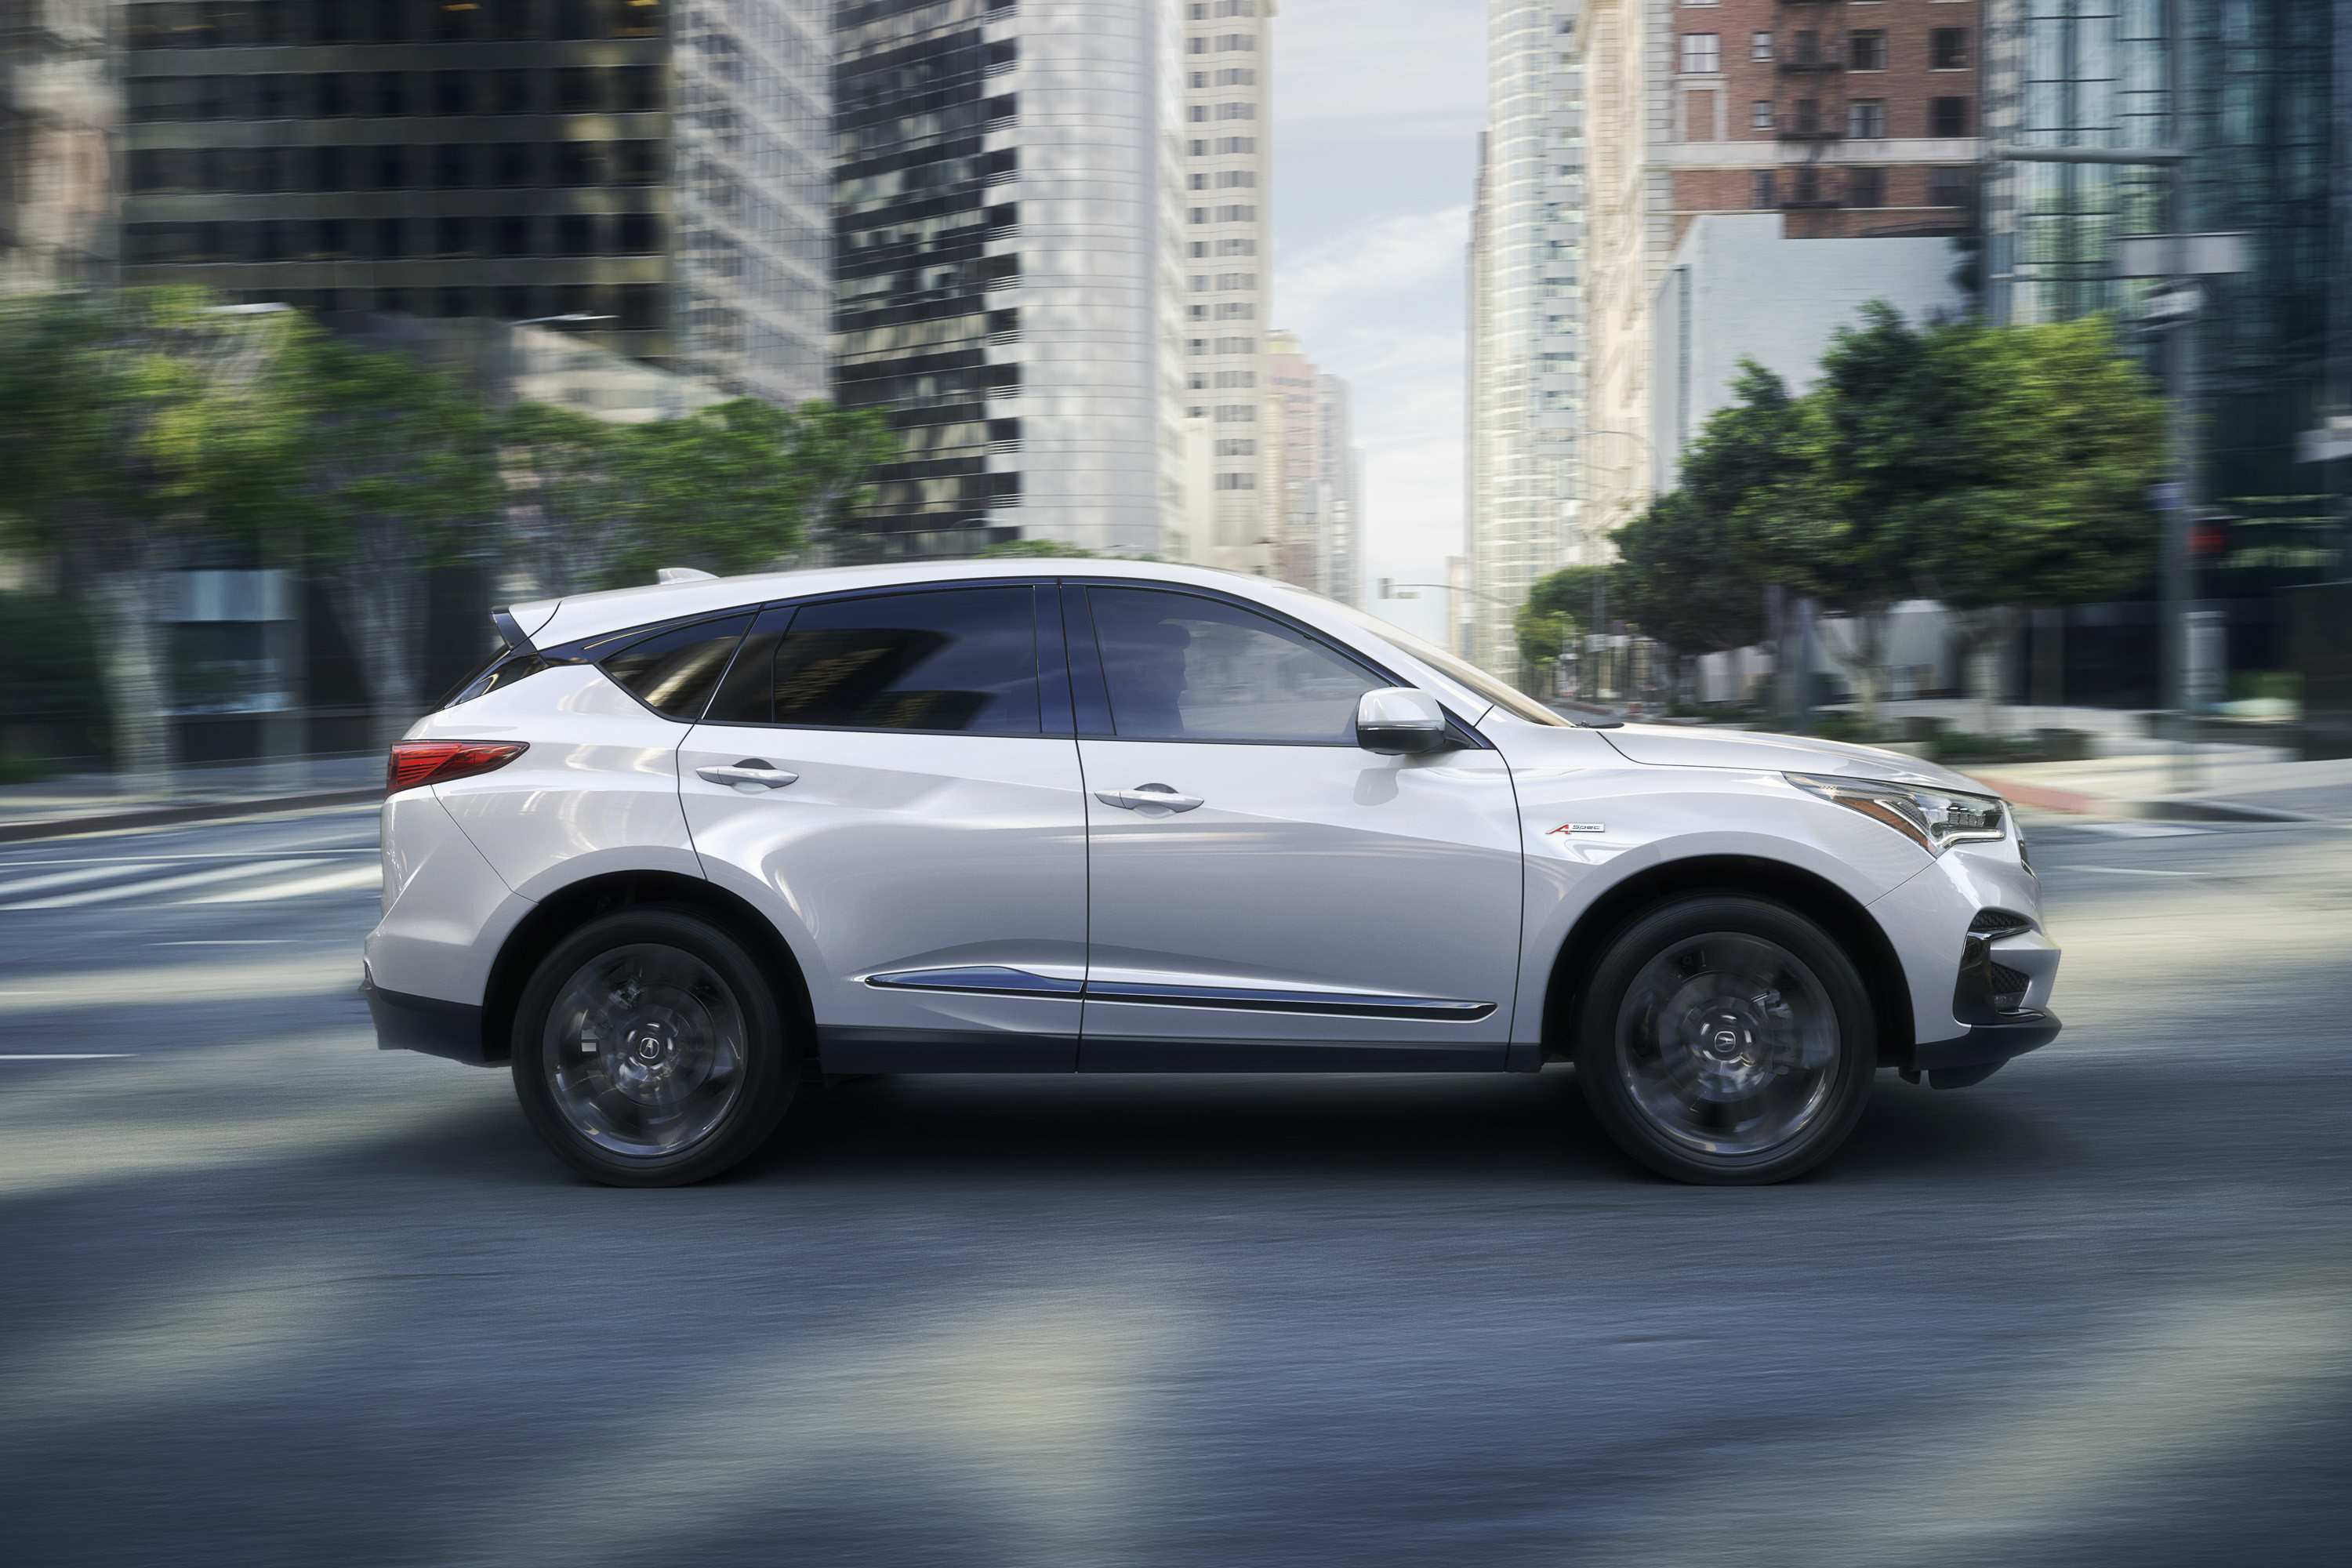 35 All New The 2019 Acura Rdx Edmunds Review And Price Pictures with The 2019 Acura Rdx Edmunds Review And Price